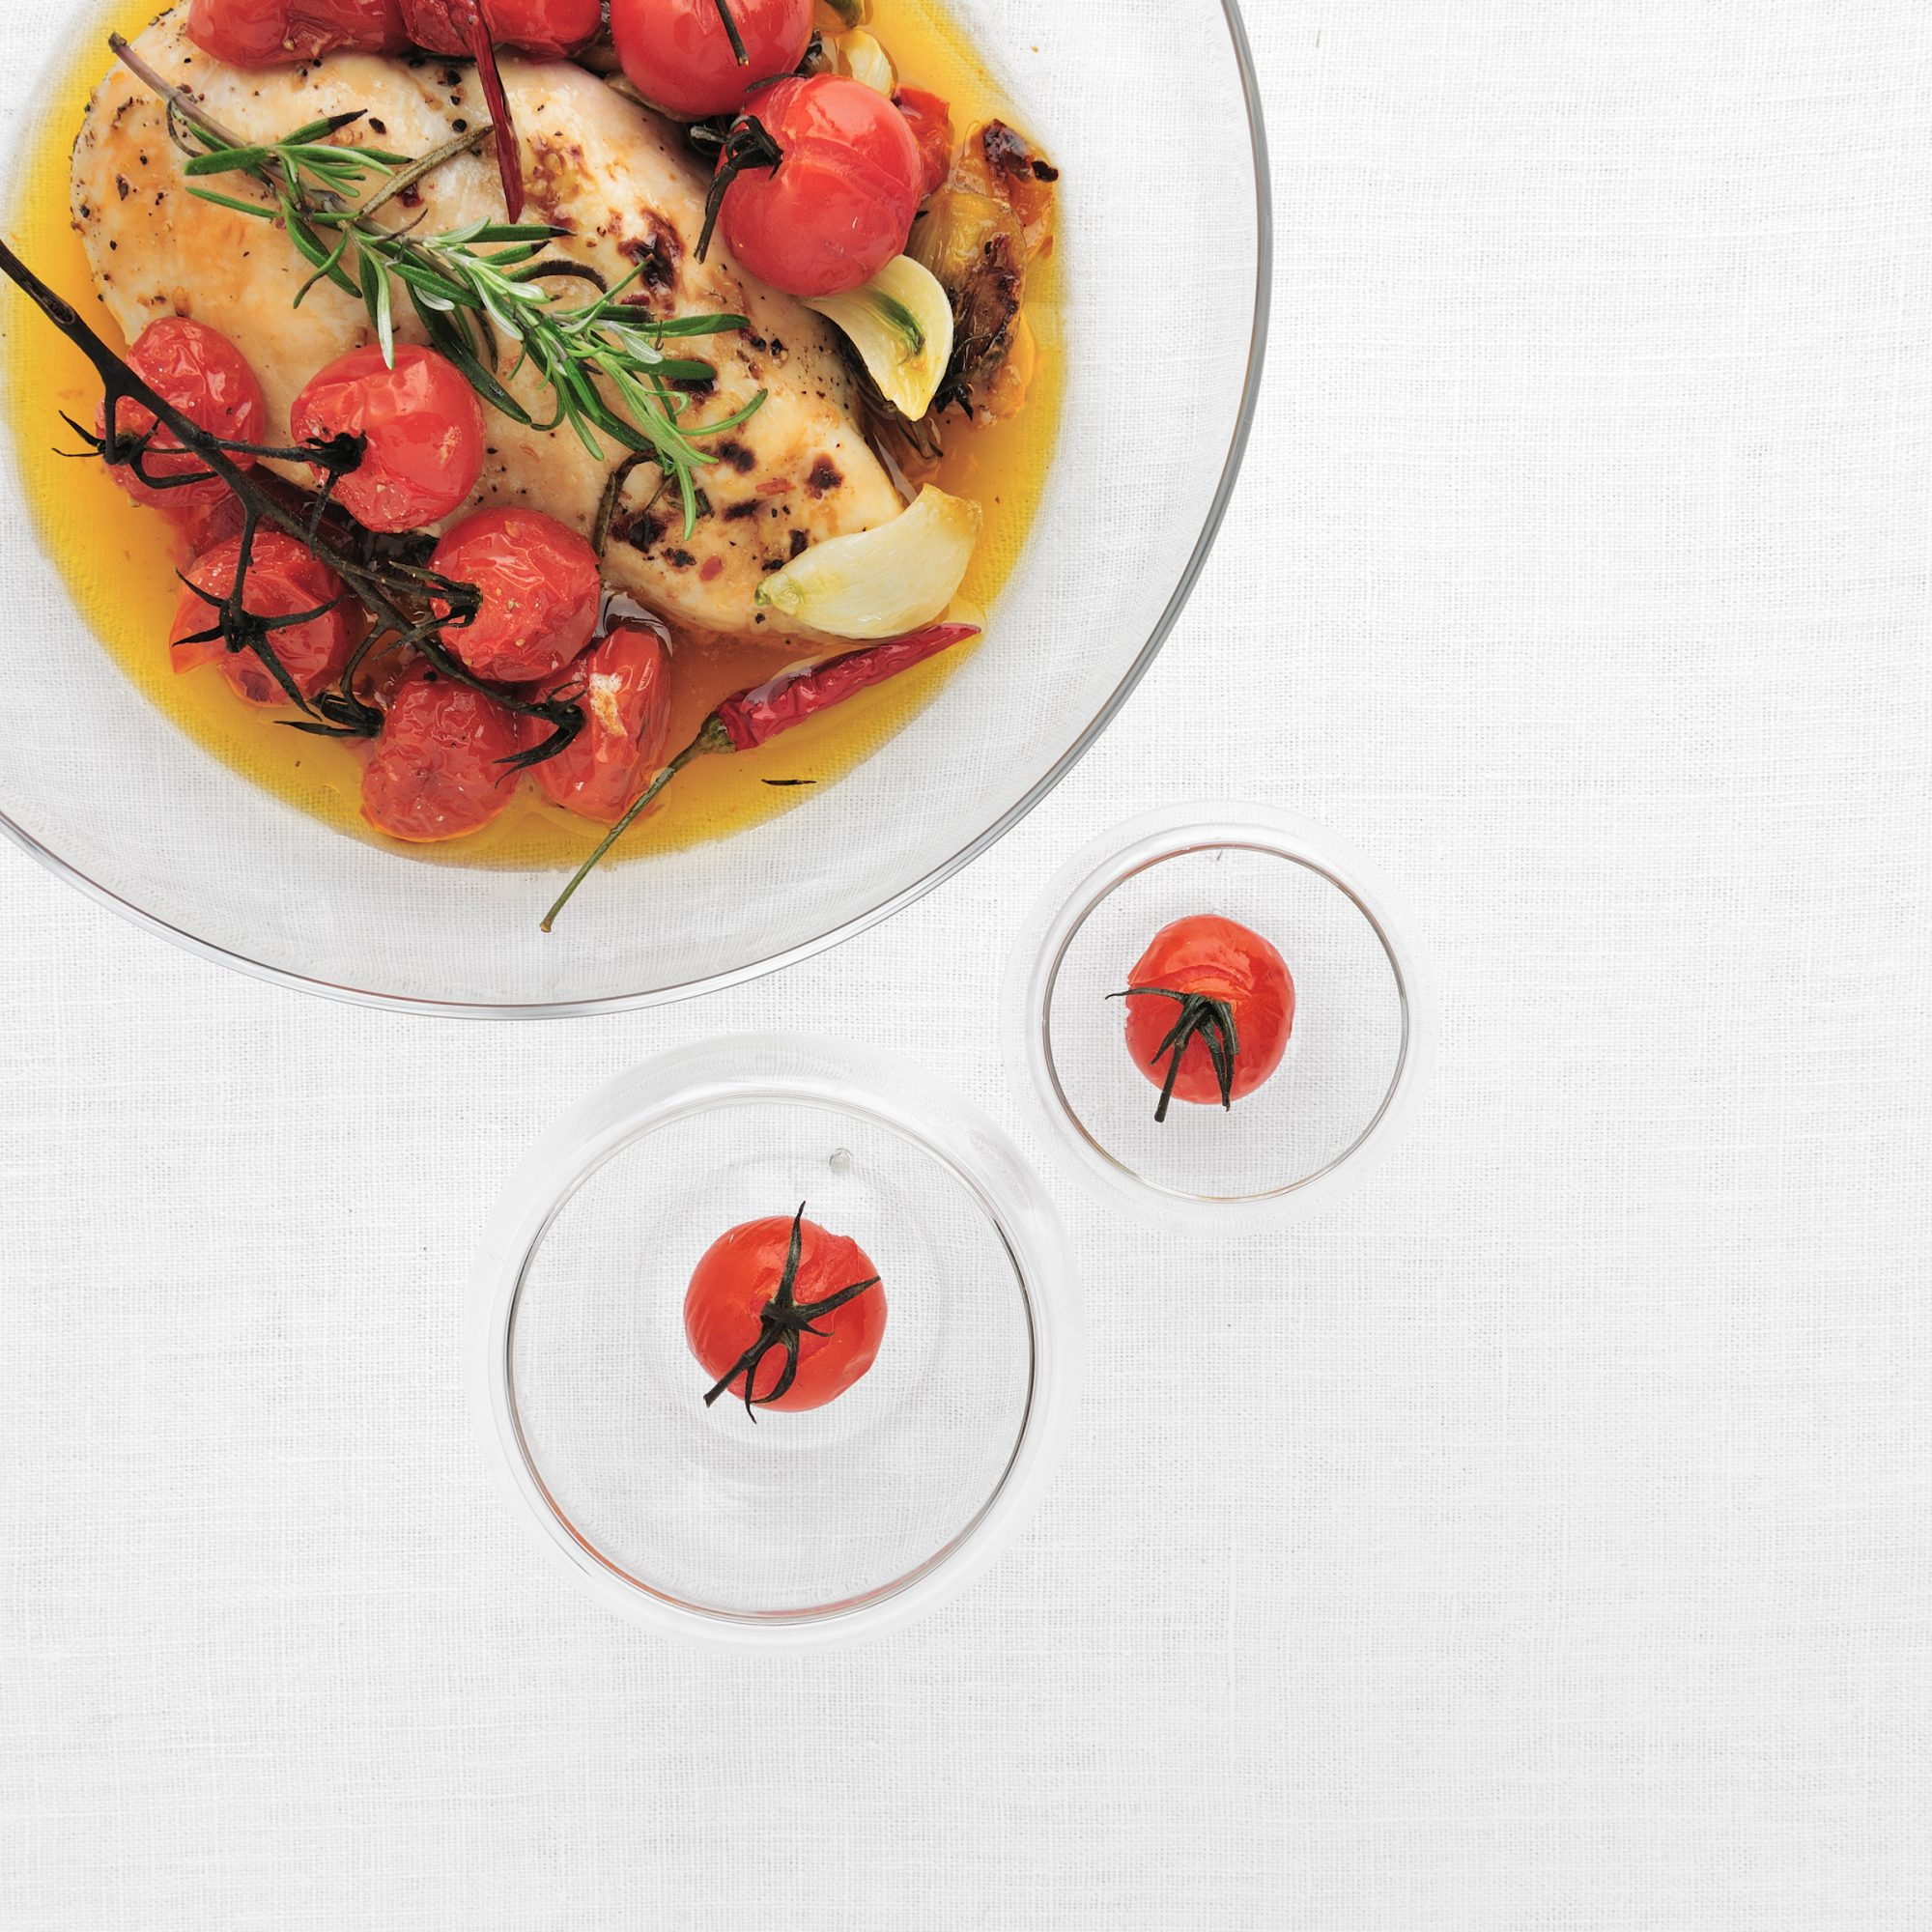 Honey Rosemary Chicken With Cherry Tomatoes Recipe Diana Sturgis The Food Wine Test Kitchen Food Wine